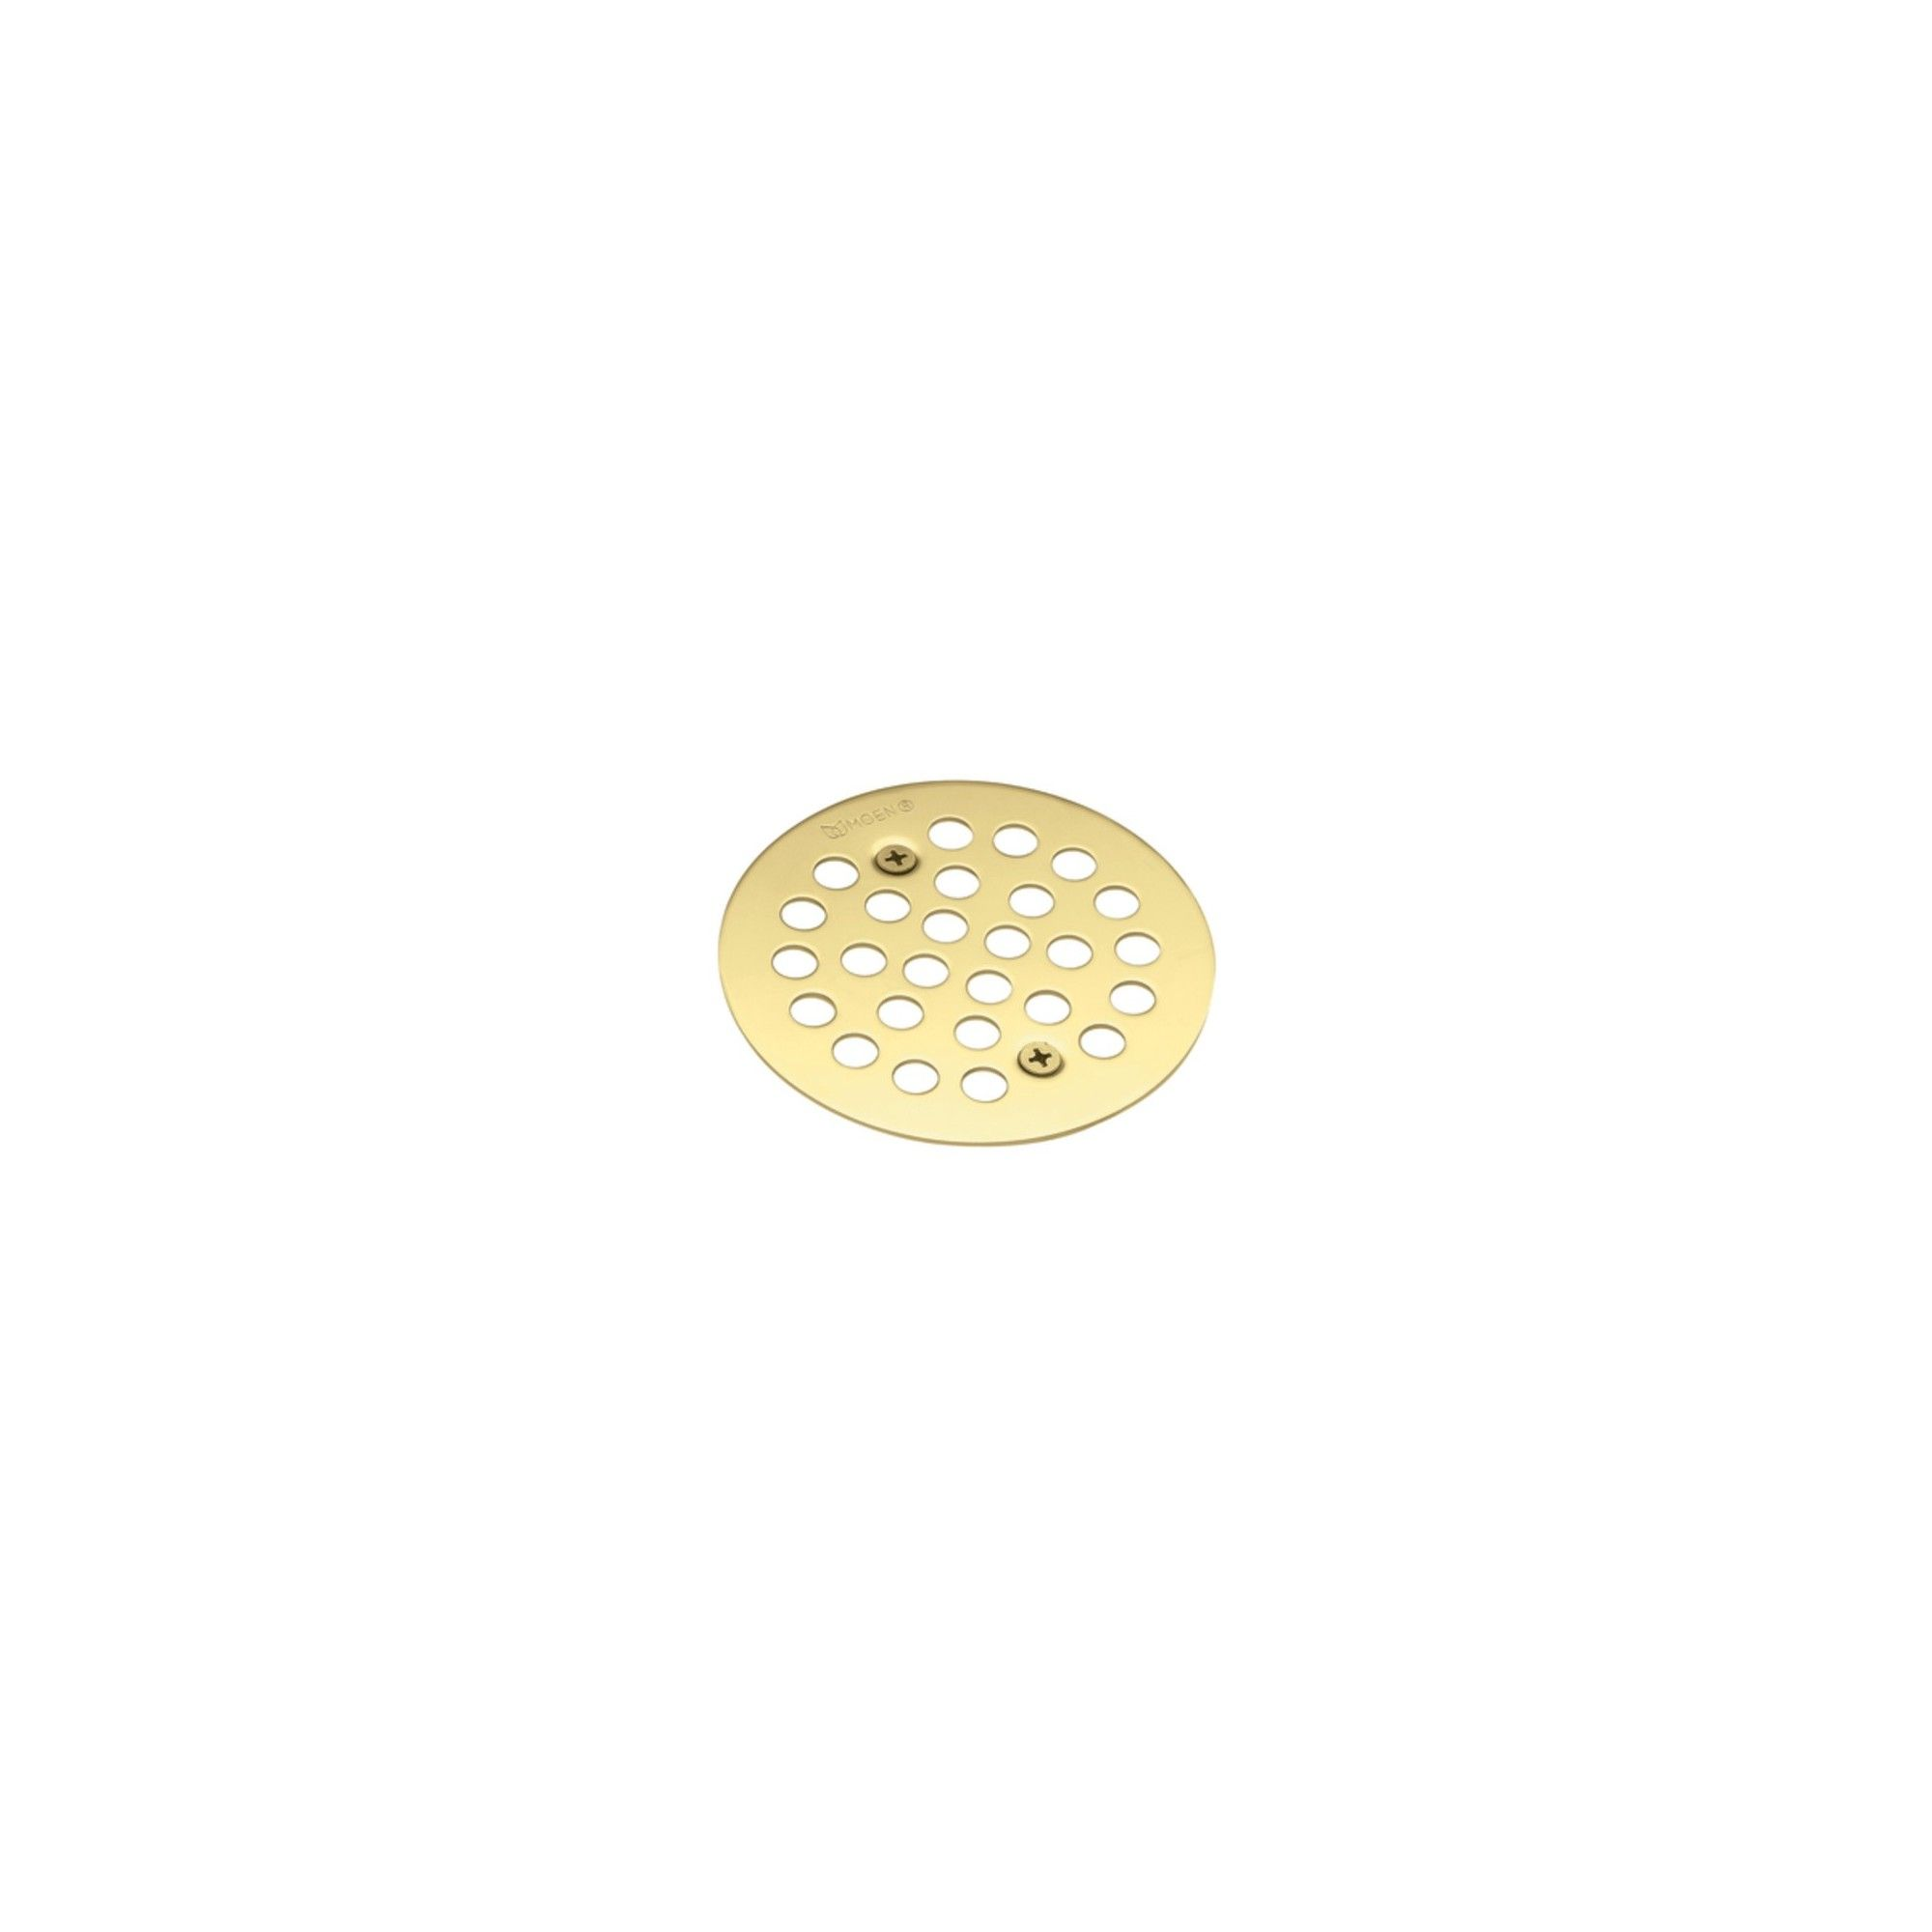 Moen 101664 4 1 4 Round Shower Drain Cover With Exposed Screw